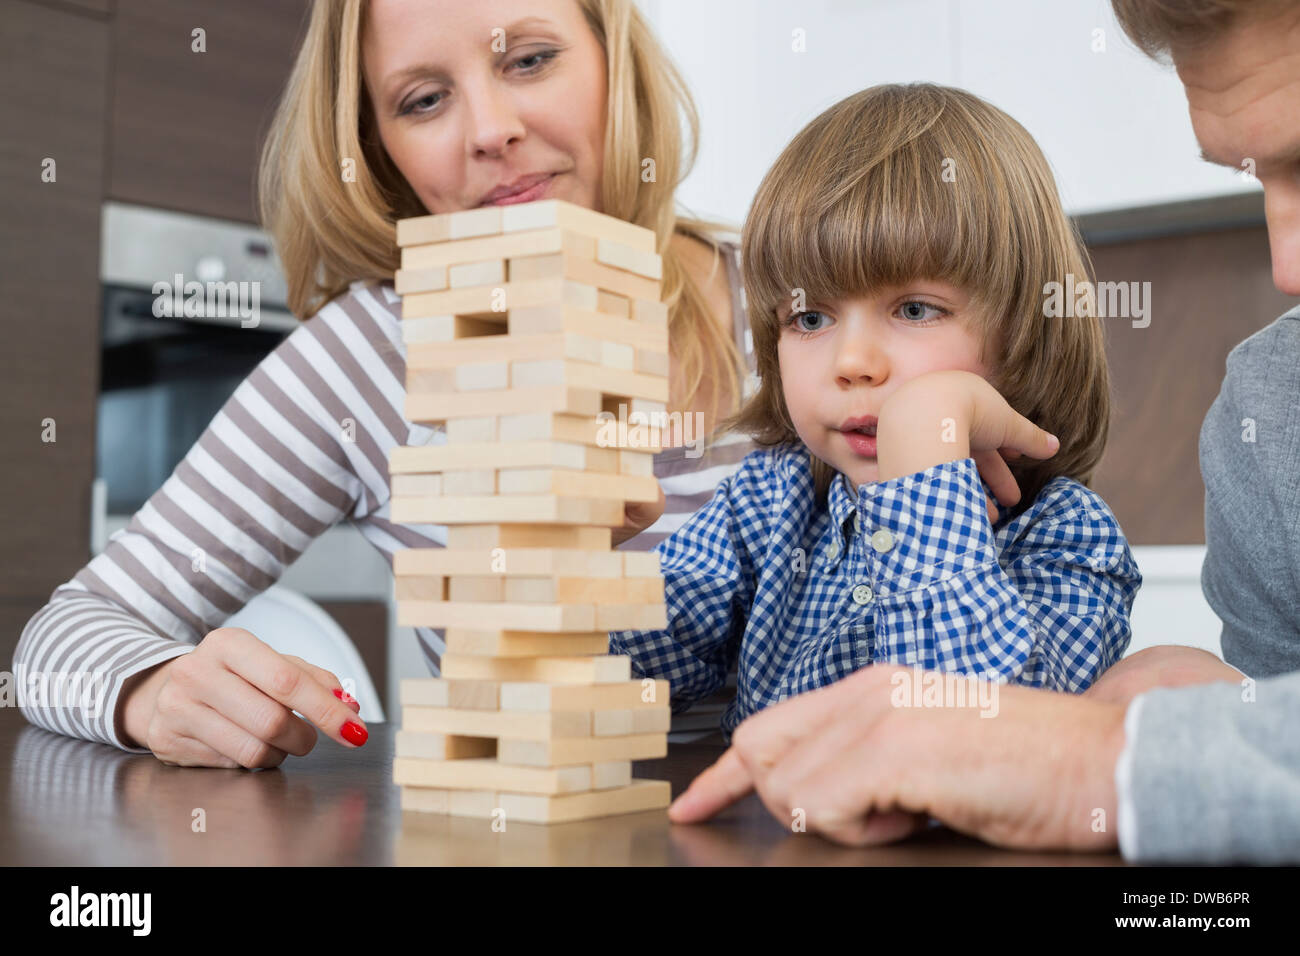 Family playing with wooden blocks at home - Stock Image